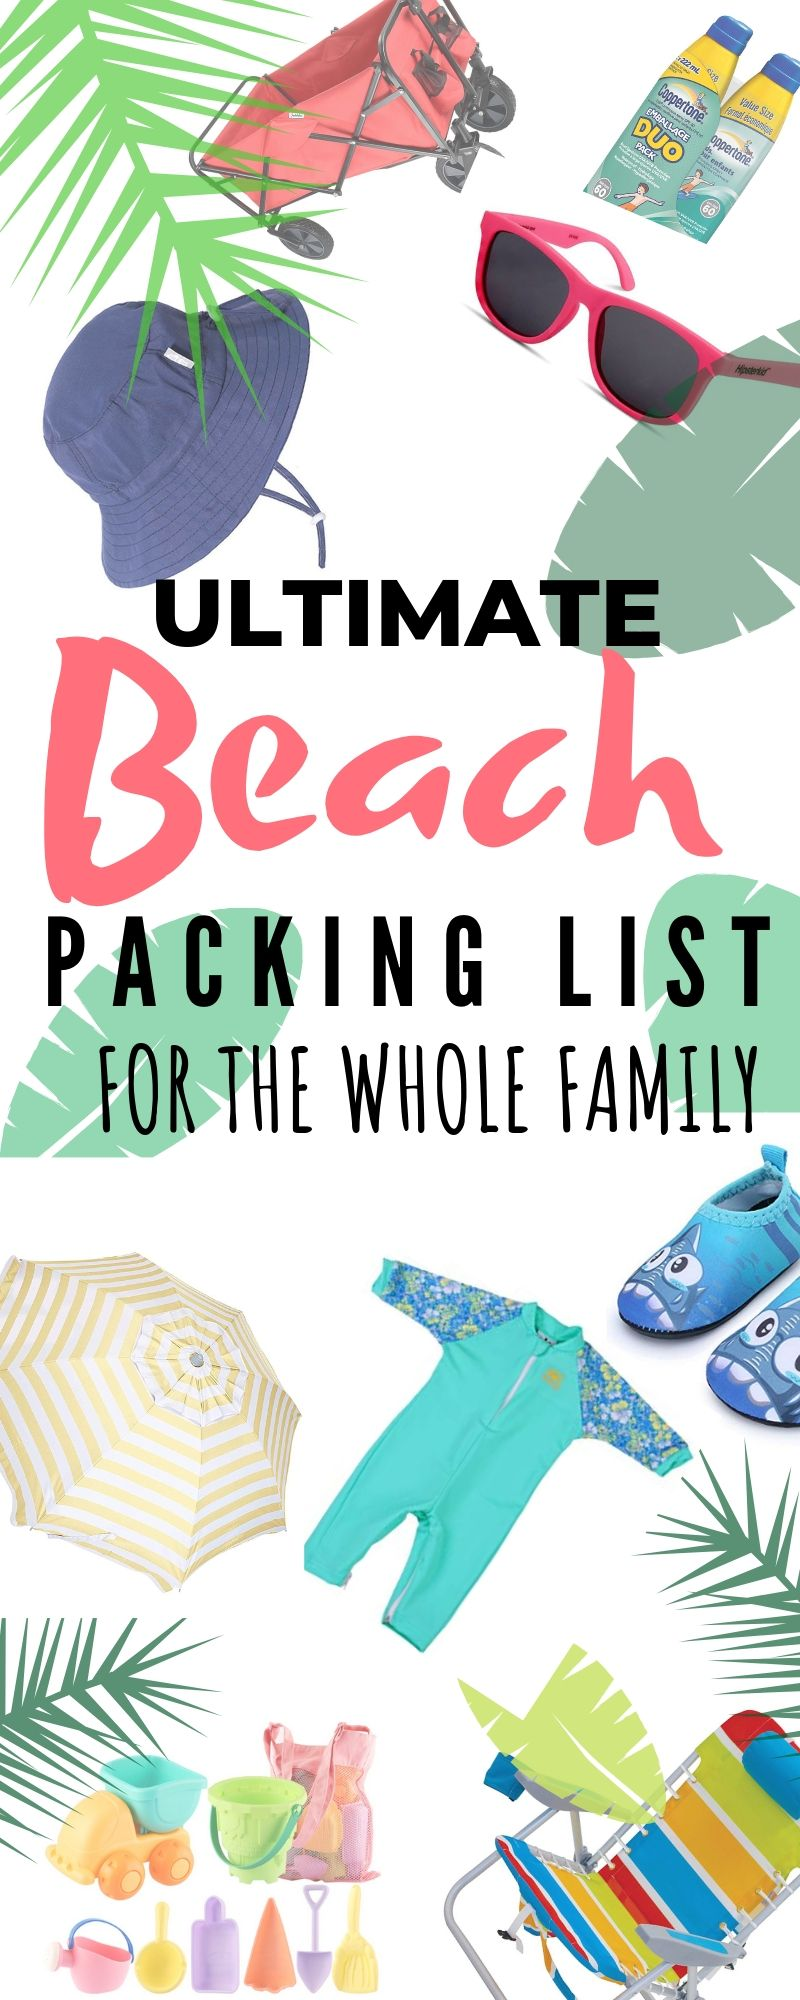 Ultimate Beach Packing List Collage